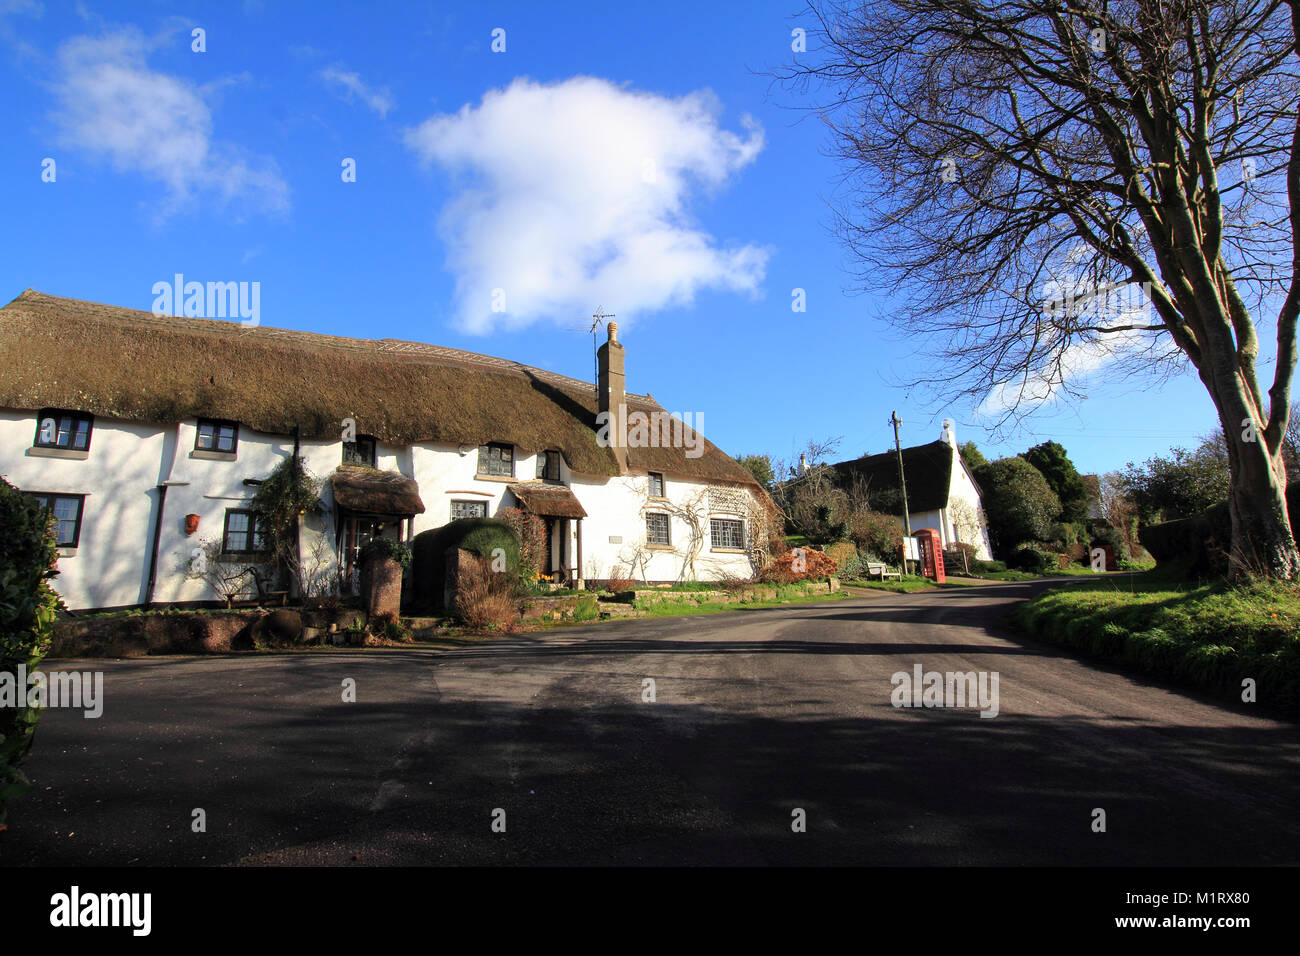 Thatched Cottages & Red Telephone Box in the Devon village of Coffinswell Southwest England - Stock Image